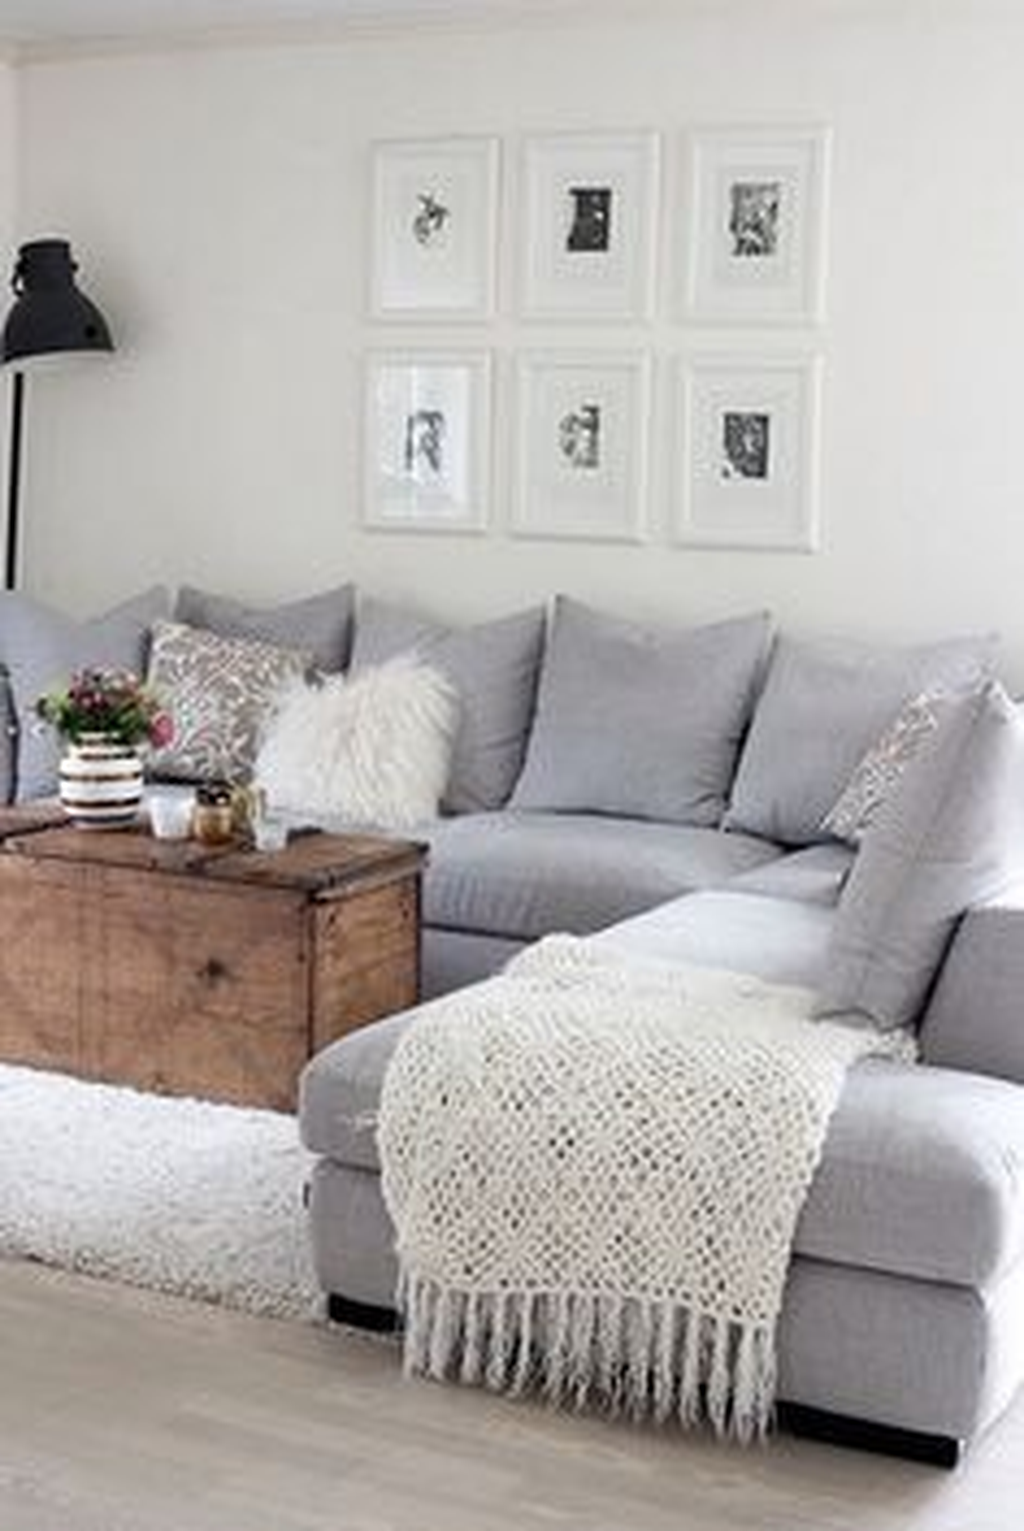 88 Inspiring Small Apartment Living Room Decoration Ideas on a ...